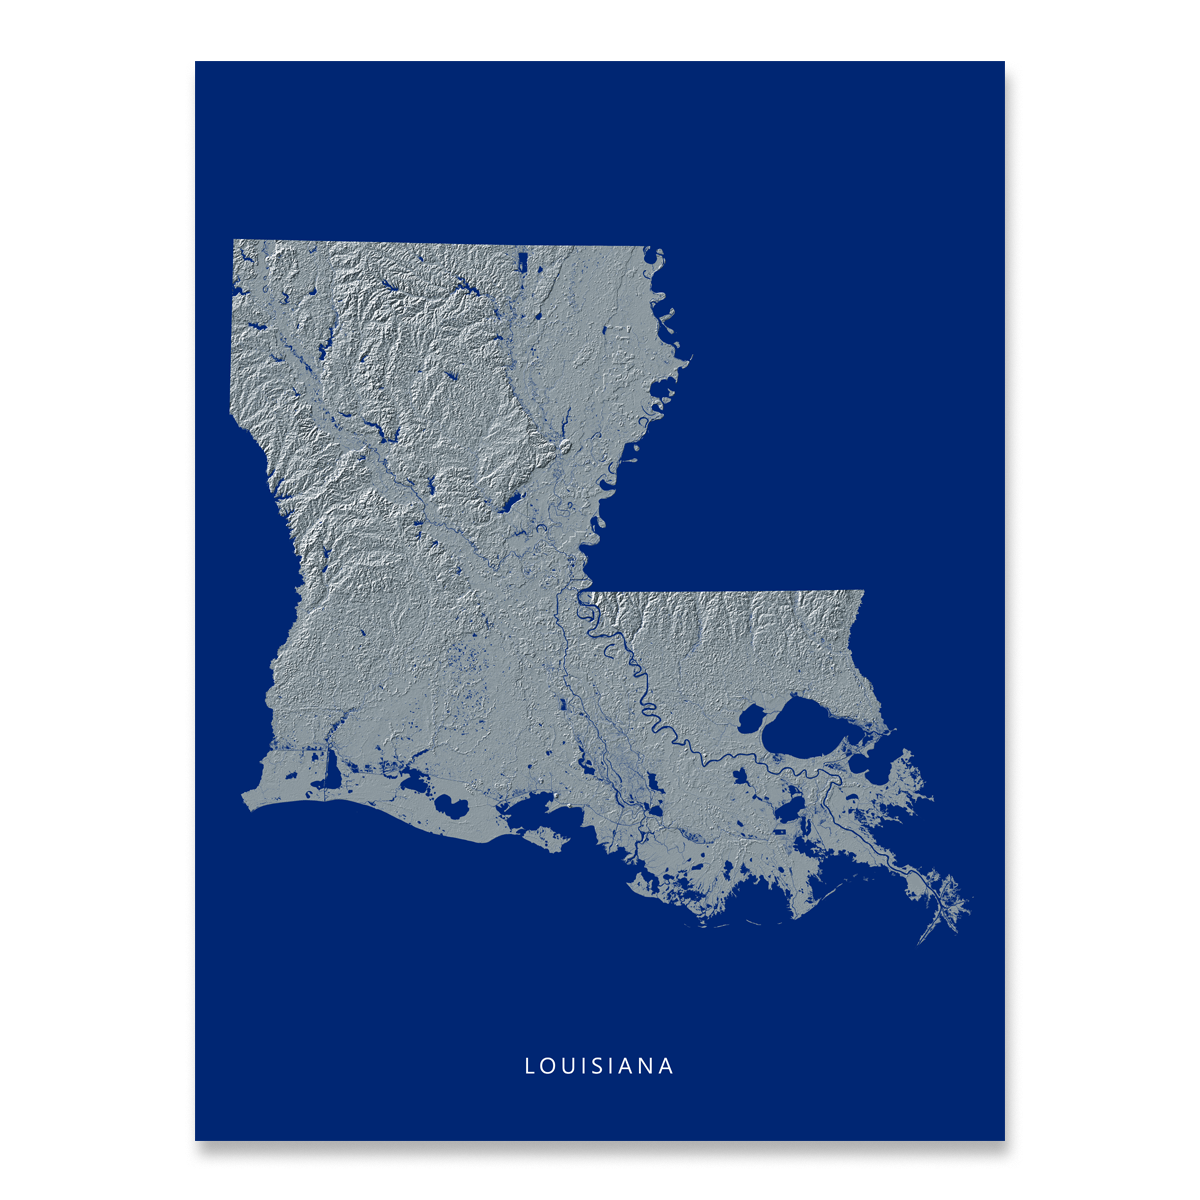 Louisiana state map print with natural landscape in greyscale and a navy blue background designed by Maps As Art.